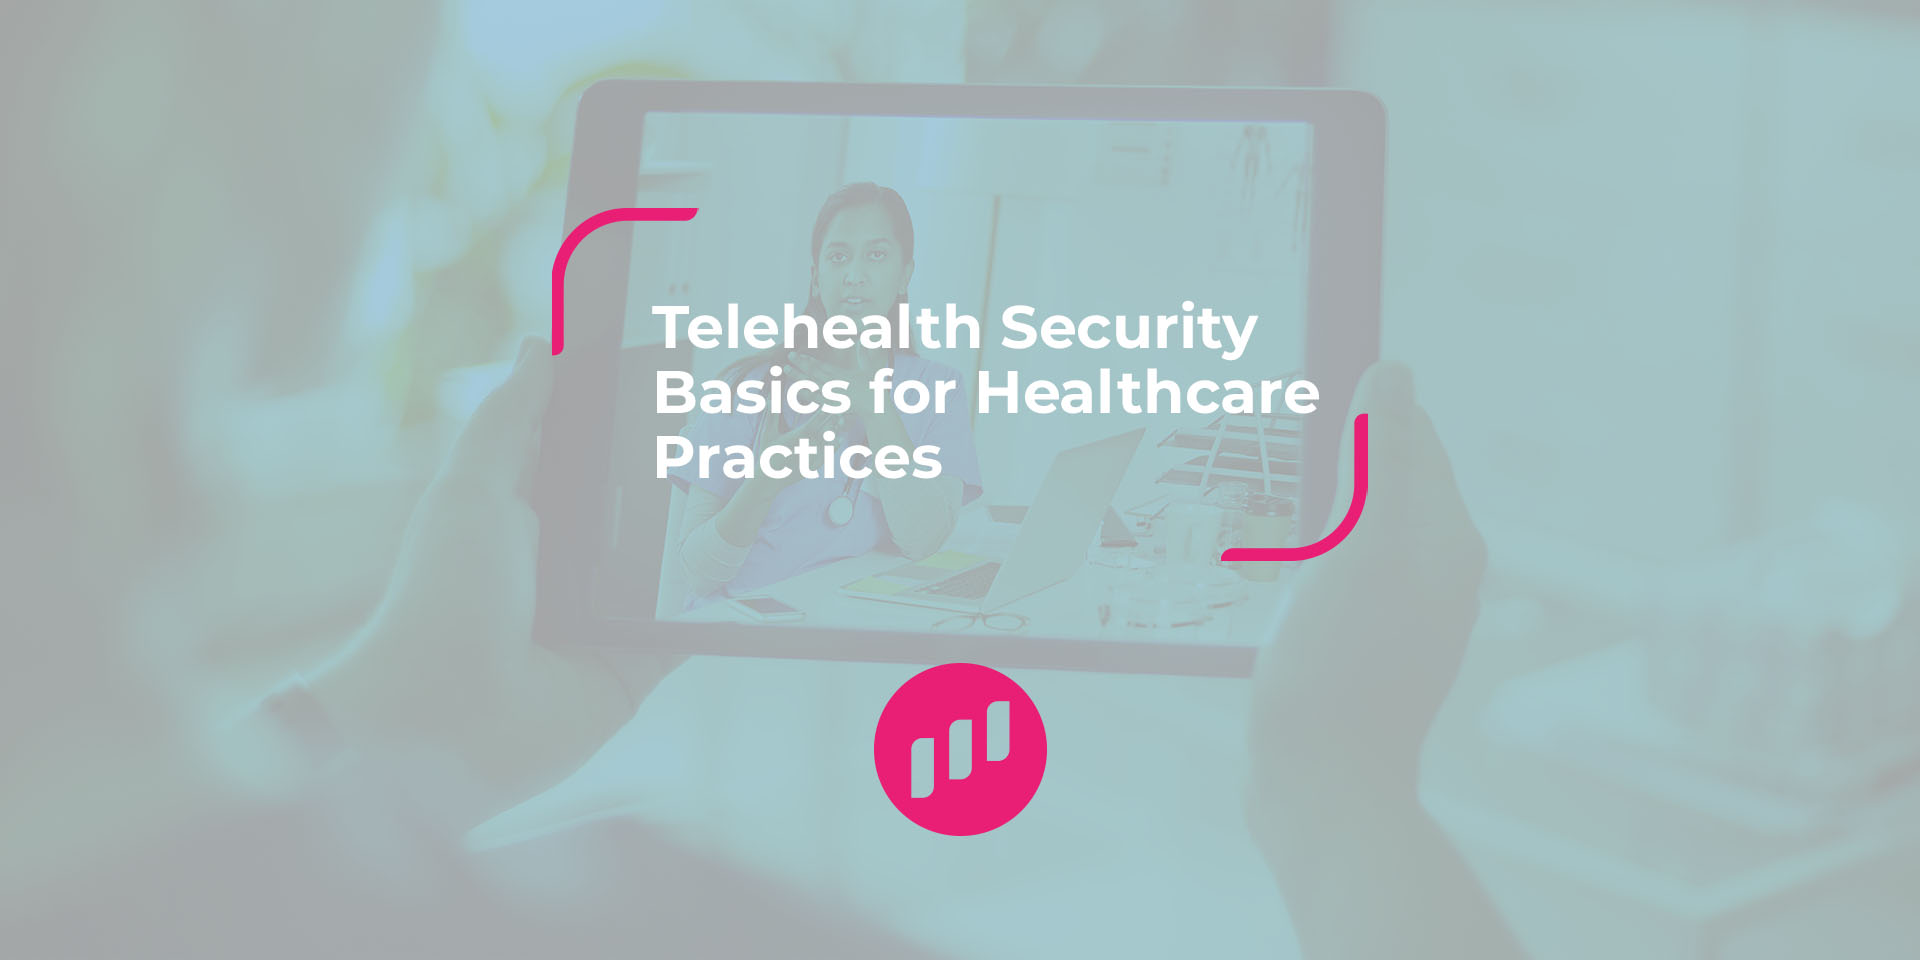 Telehealth Security Basics for Healthcare Practices